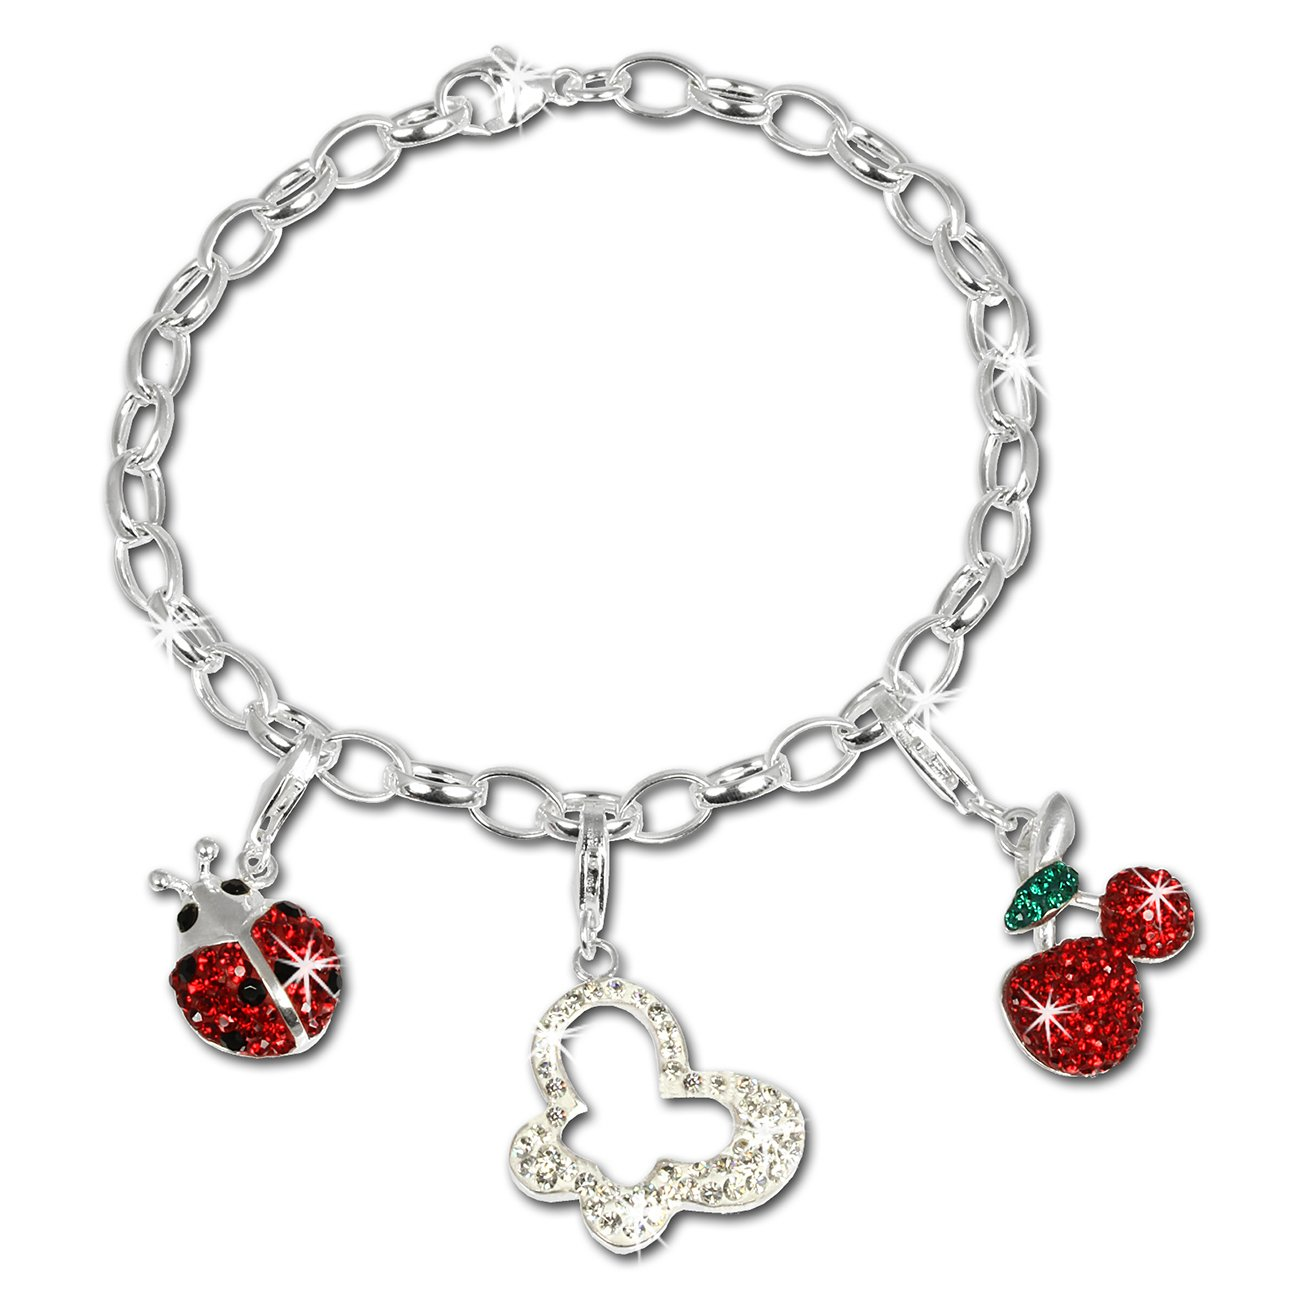 SilberDream Charms Armband Glitzerset - Natur - Swarovski Elements 925 Sterling Silber Charm Armband und Anhänger - FCA141 Charms Sets